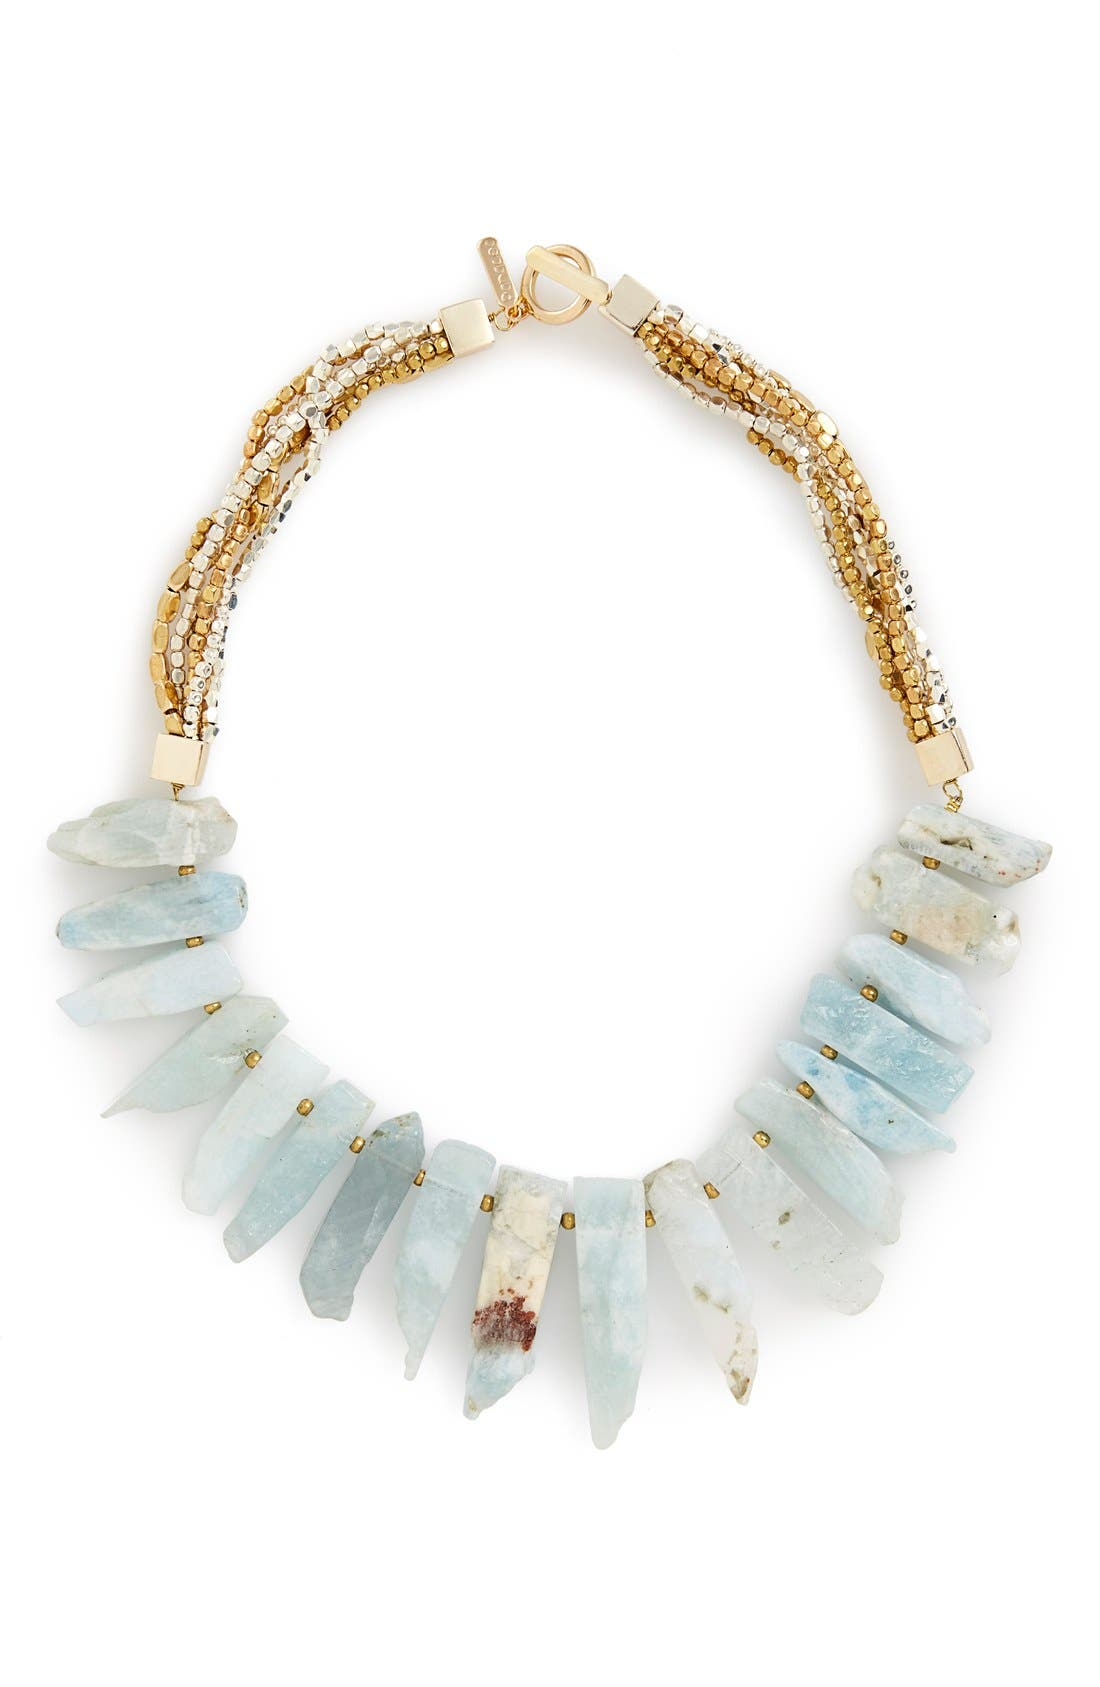 Alternate Image 1 Selected - Panacea Aquamarine Beaded Bib Necklace